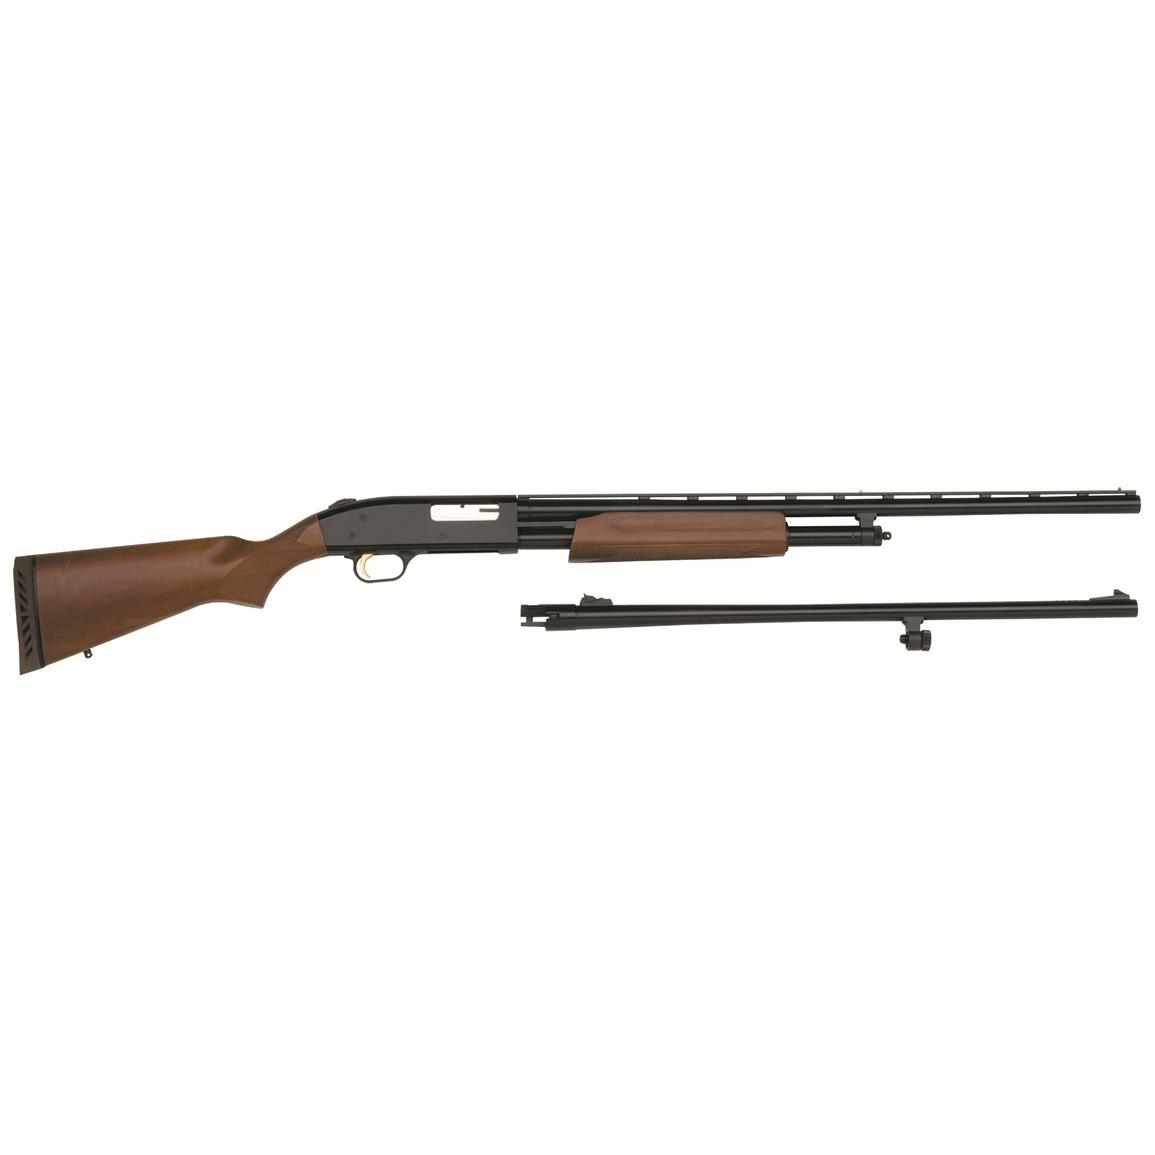 "Mossberg 500 Combo, Pump Action, 20 Gauge, 24"" / 26"" Barrels, 4+1 Rounds"